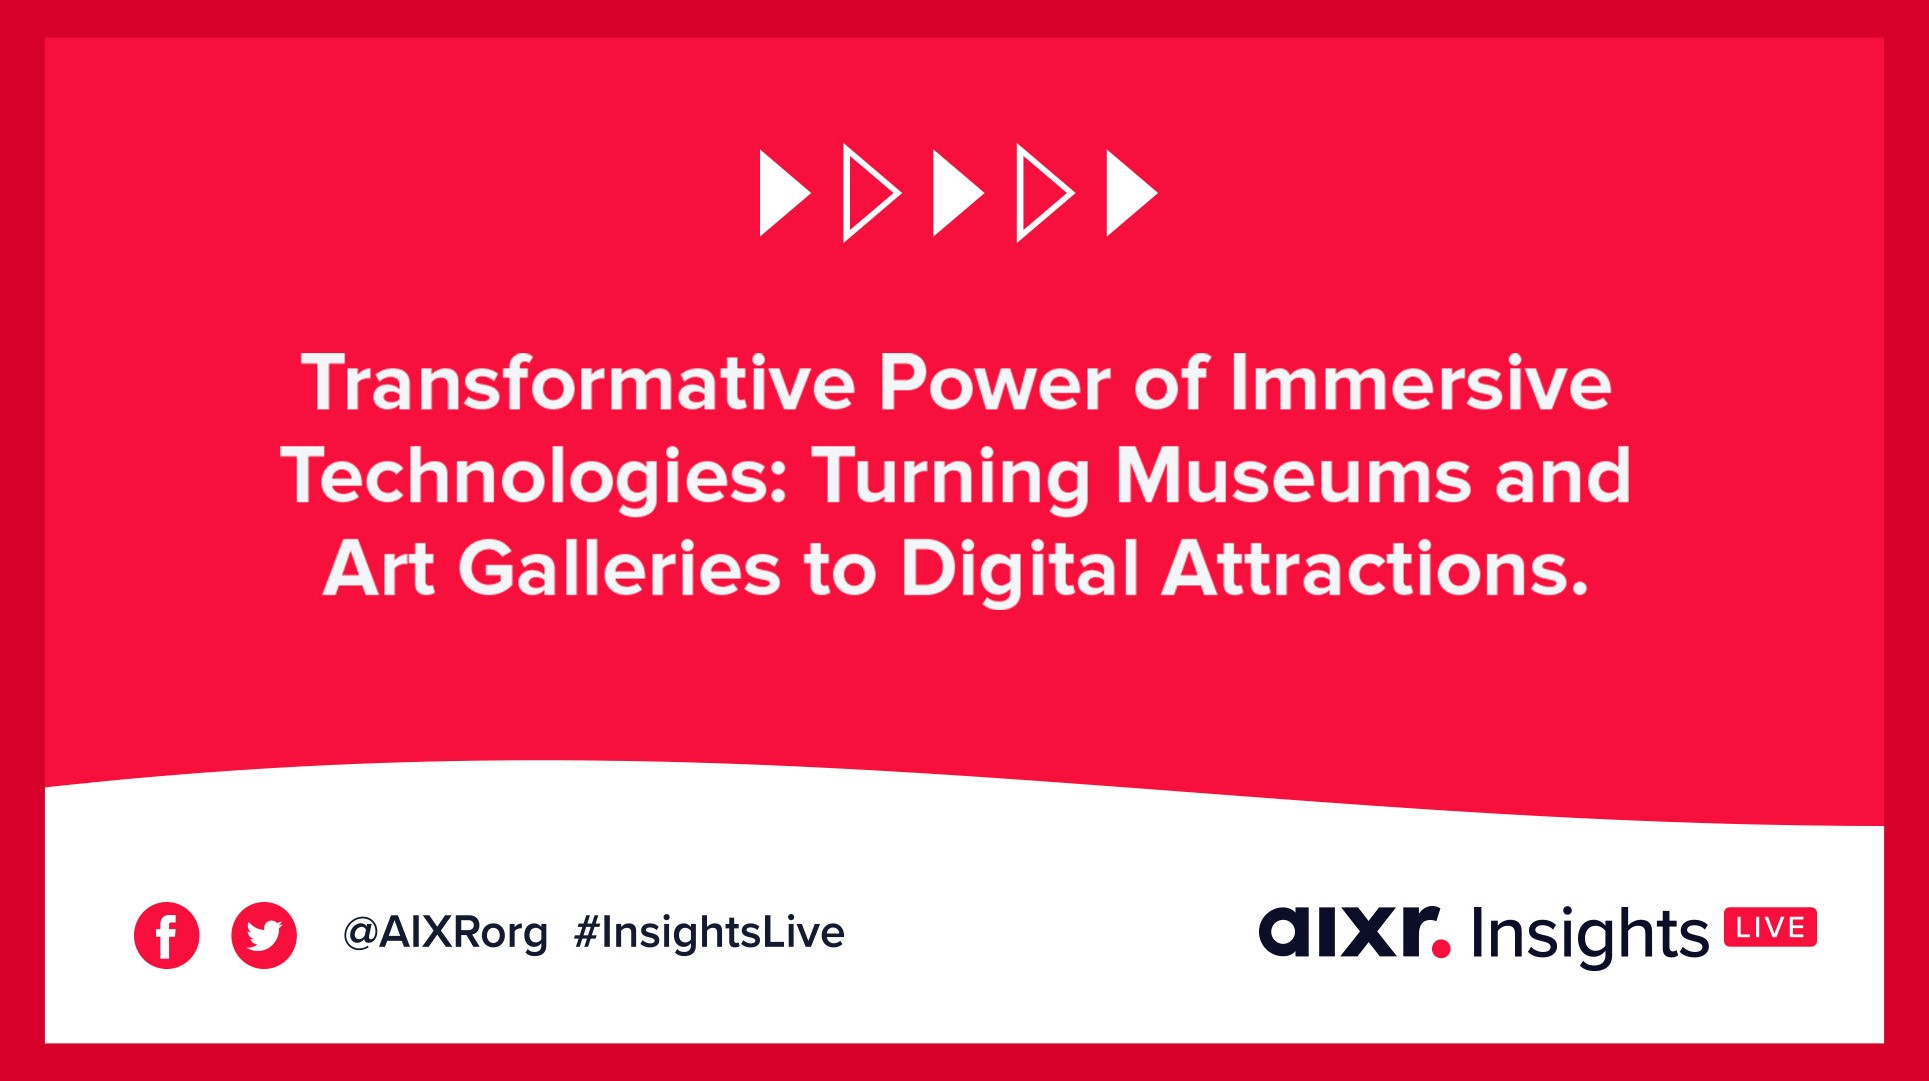 A banner for a webinar on how immersive technologies are transforming museum and art industry